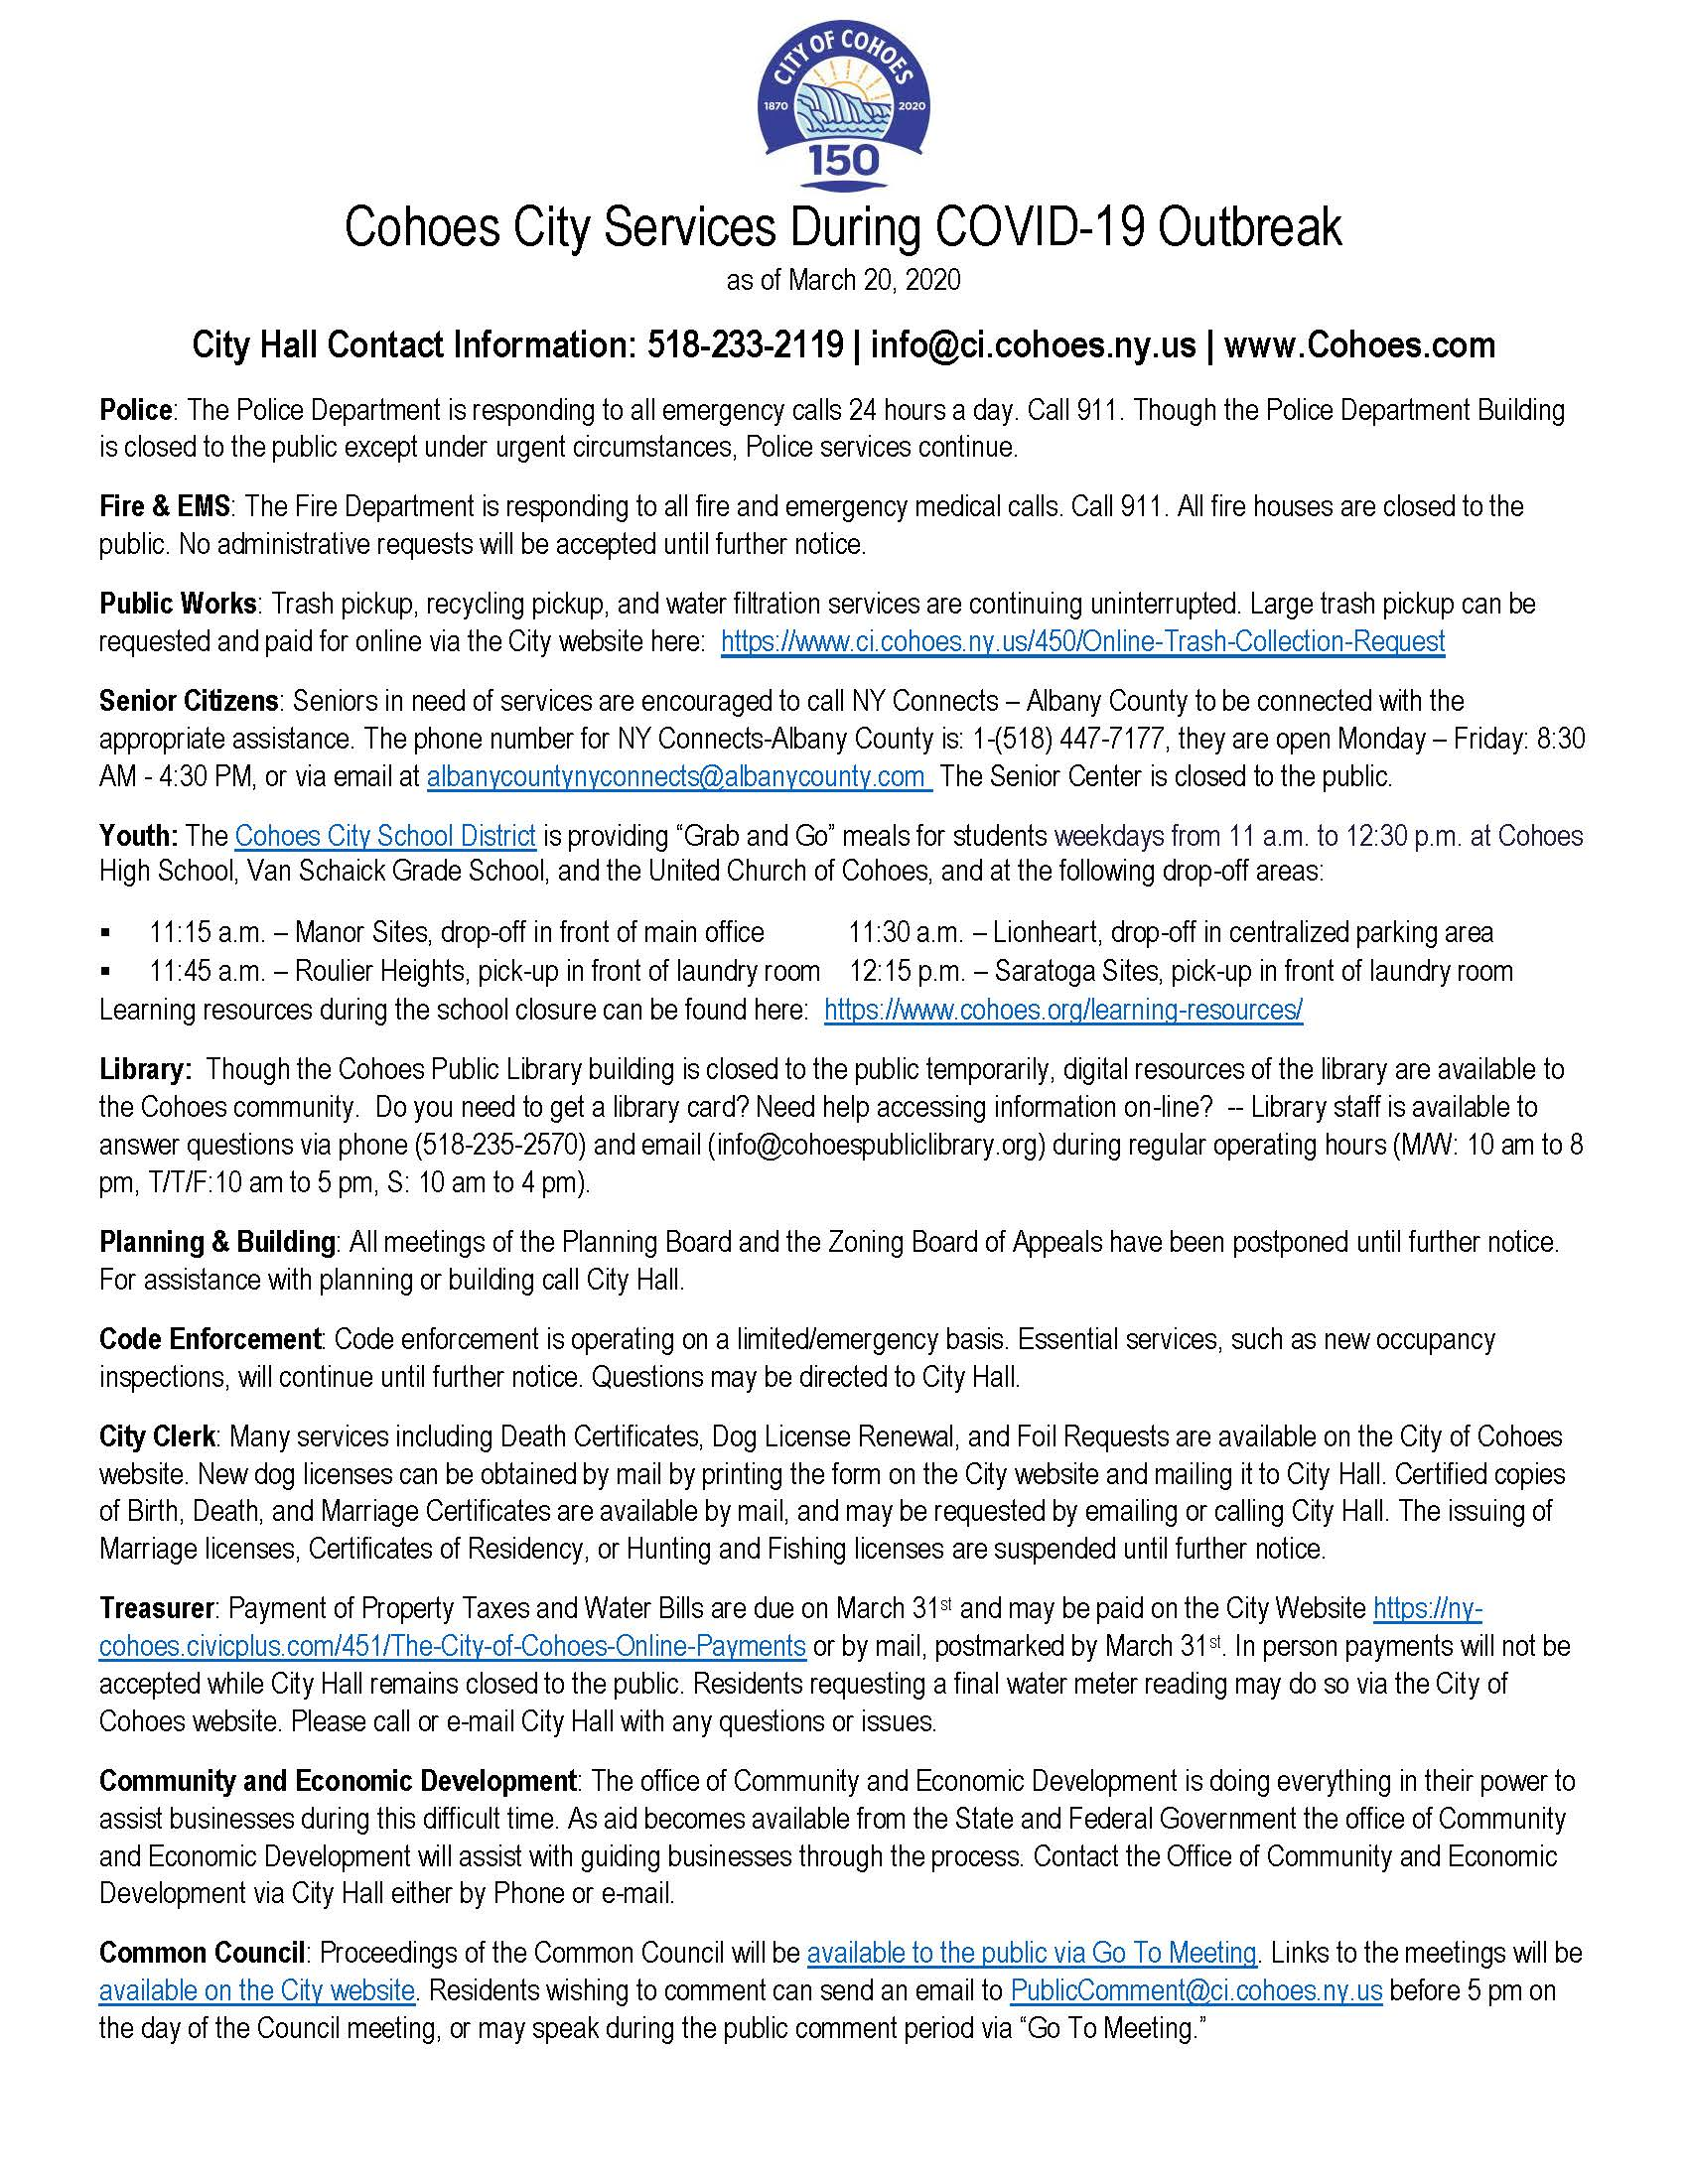 COVID City Services as of March 20 2020 Fact Sheet (final)